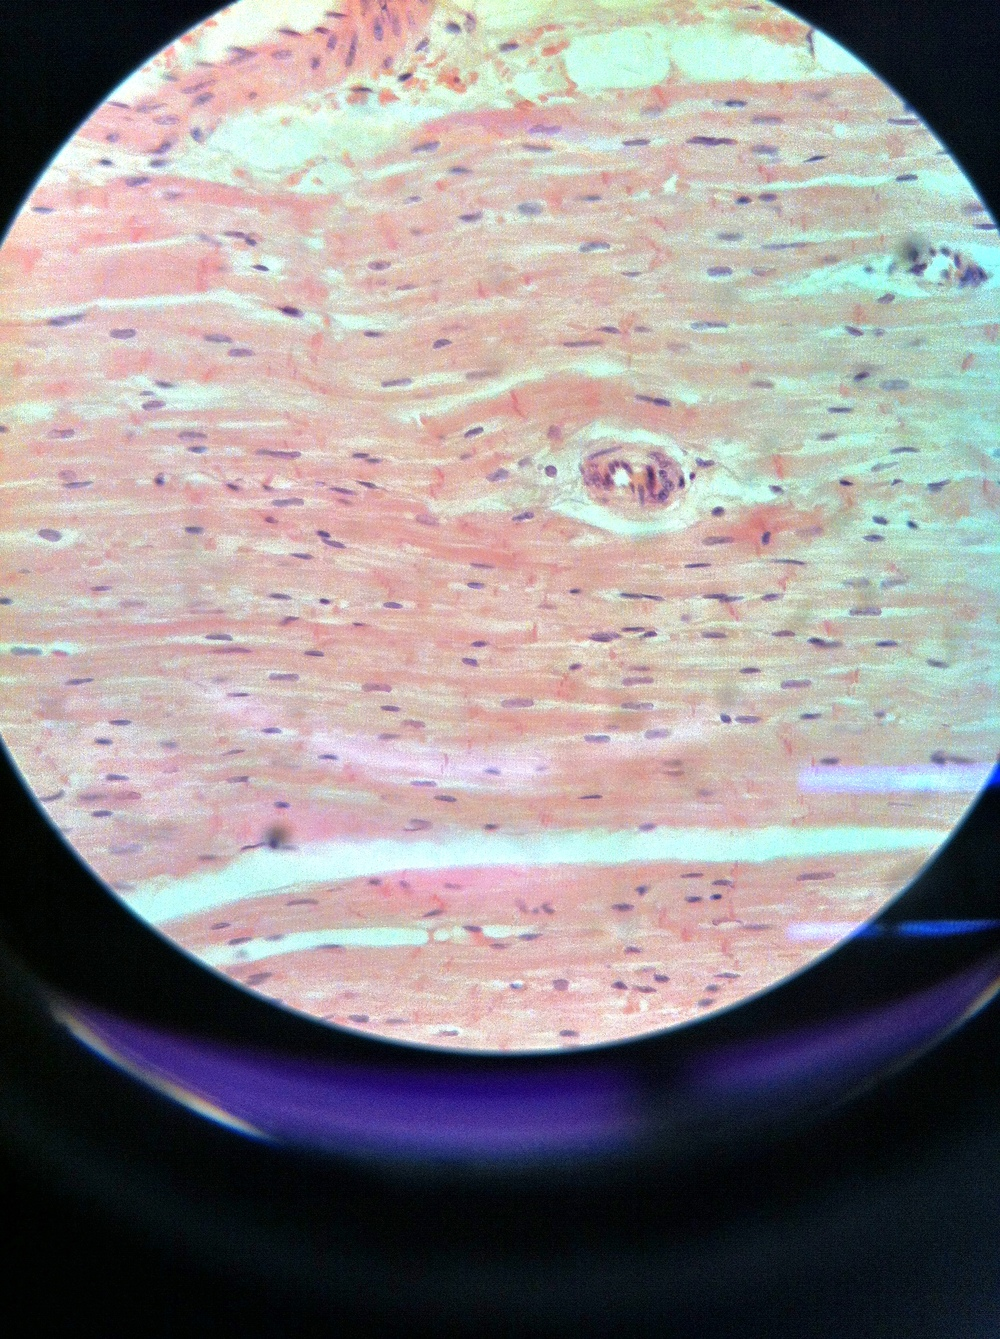 cardiac muscle (ls), Total Mag: 400X